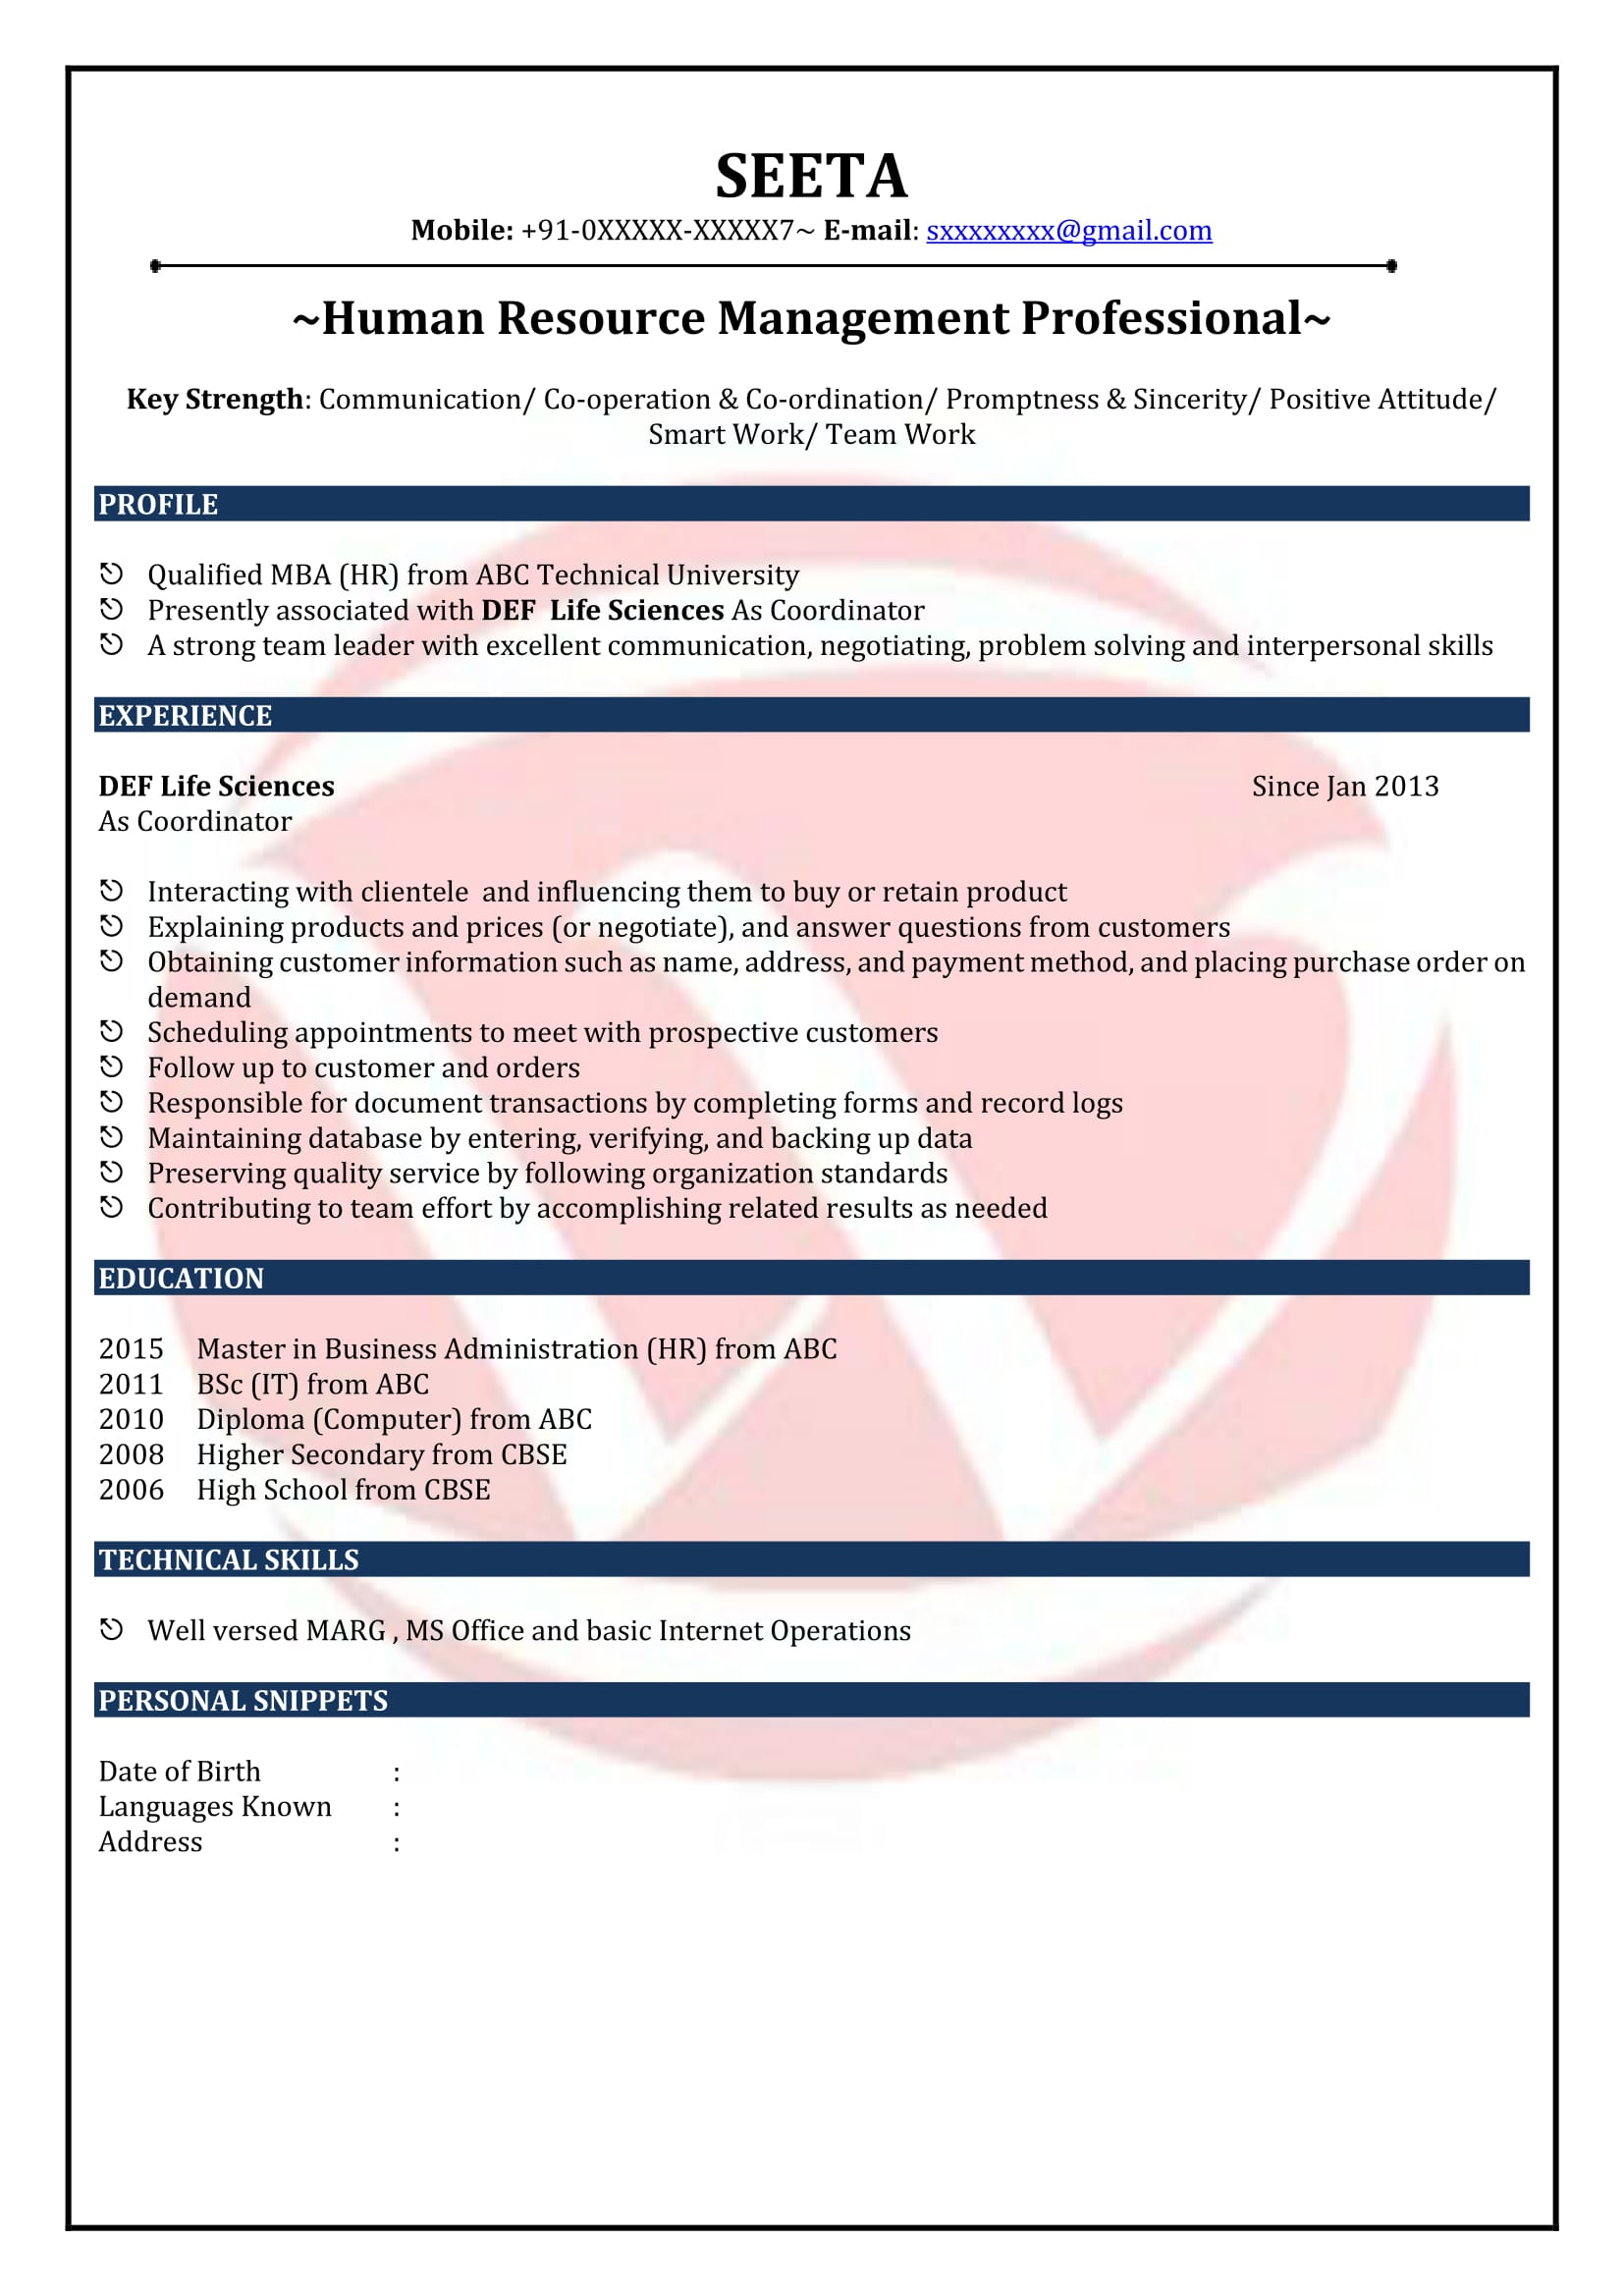 HR Fresher Sample Resume